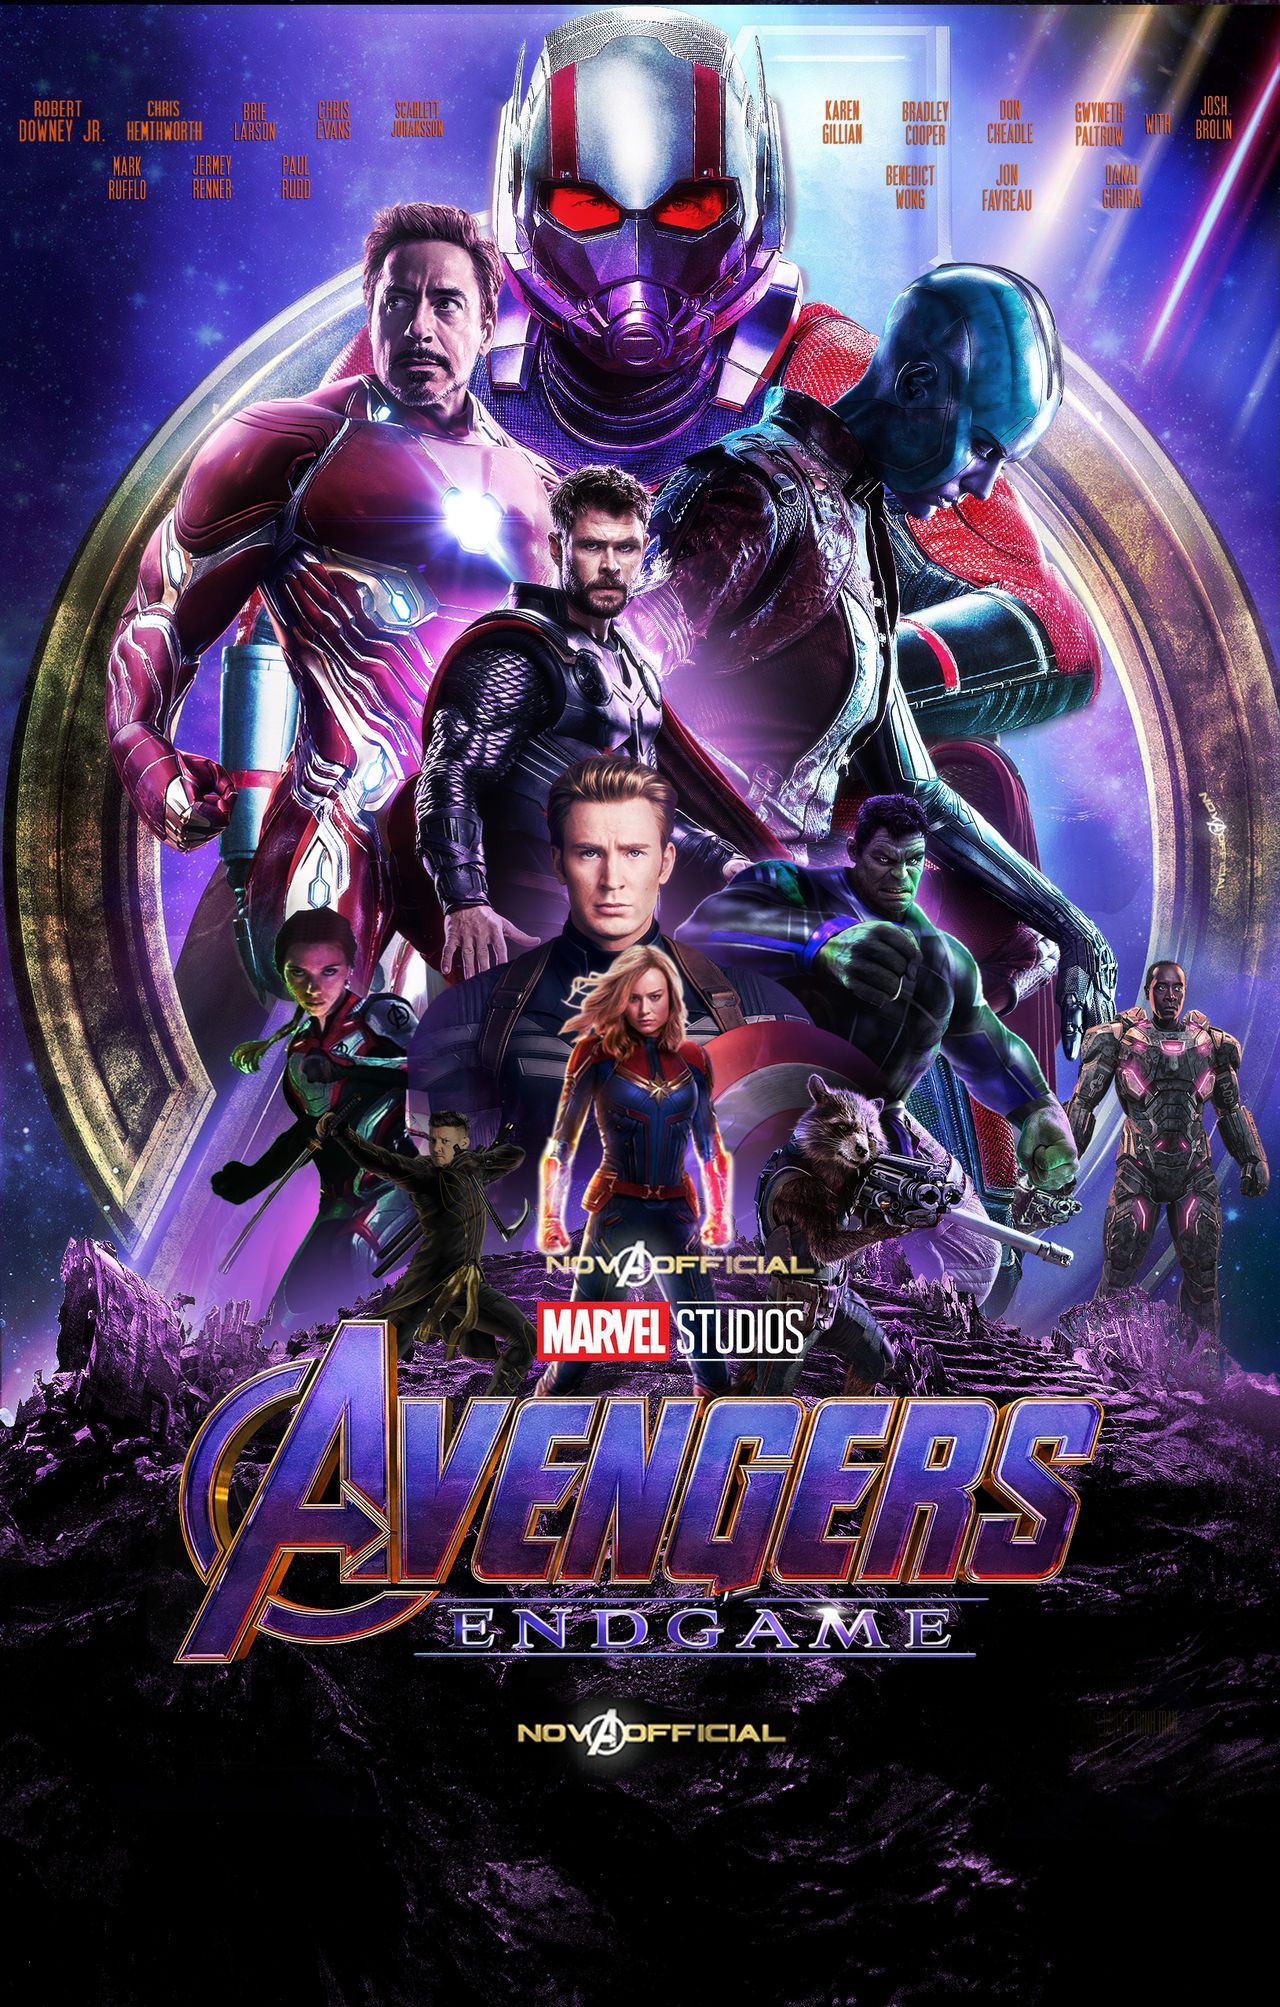 Vengadores Endgame Pelicula Completa Espanol Latino Avengers Poster Avengers Pictures Marvel Avengers